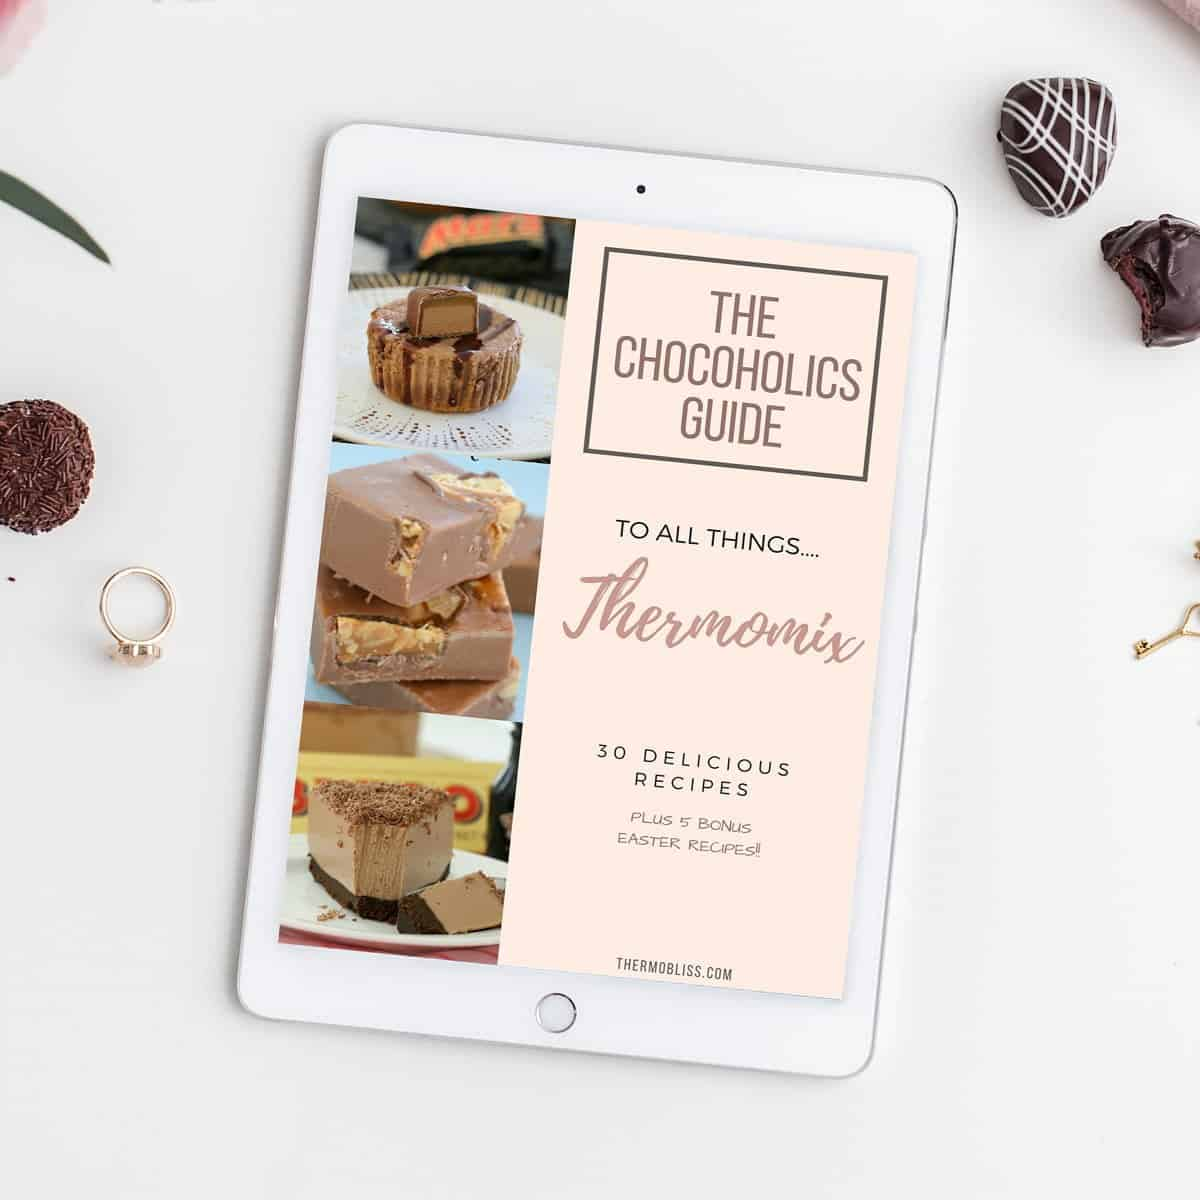 A recipe book cover - The Chocoholics Guide